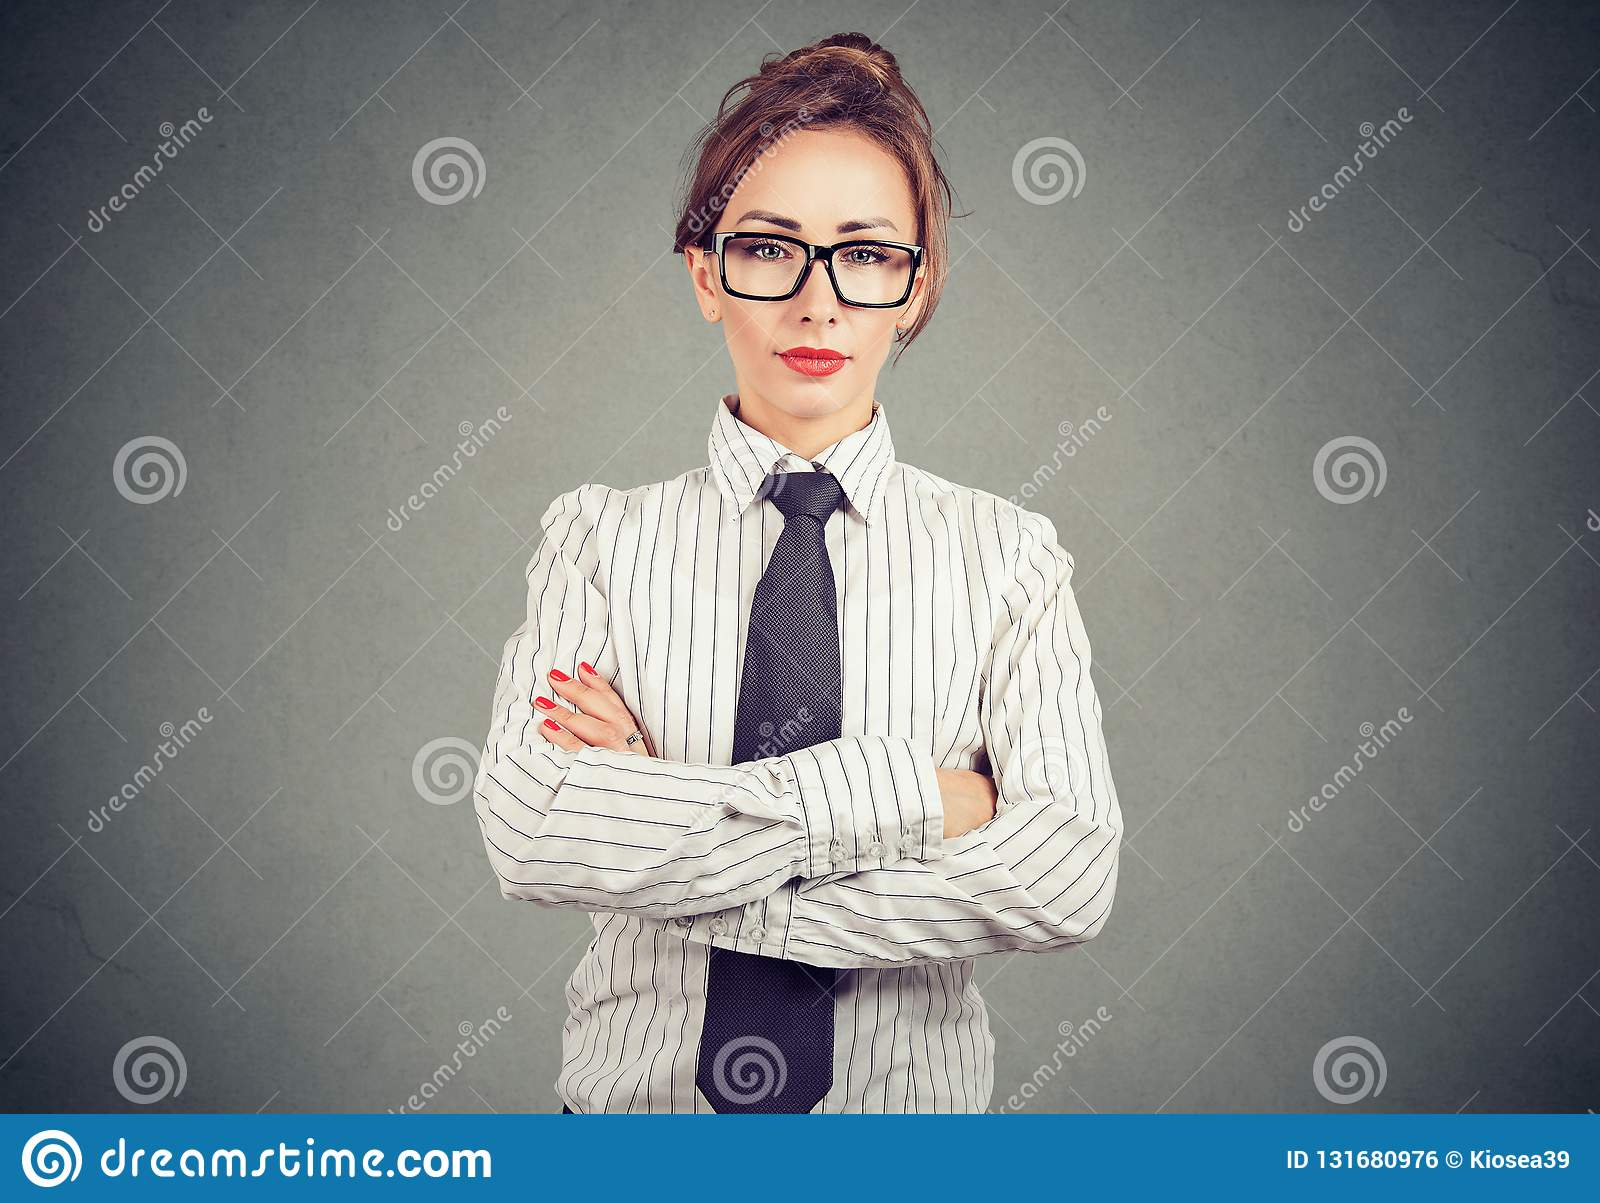 Confident woman in formal outfit and eyeglasses holding arms crossed and looking at camera